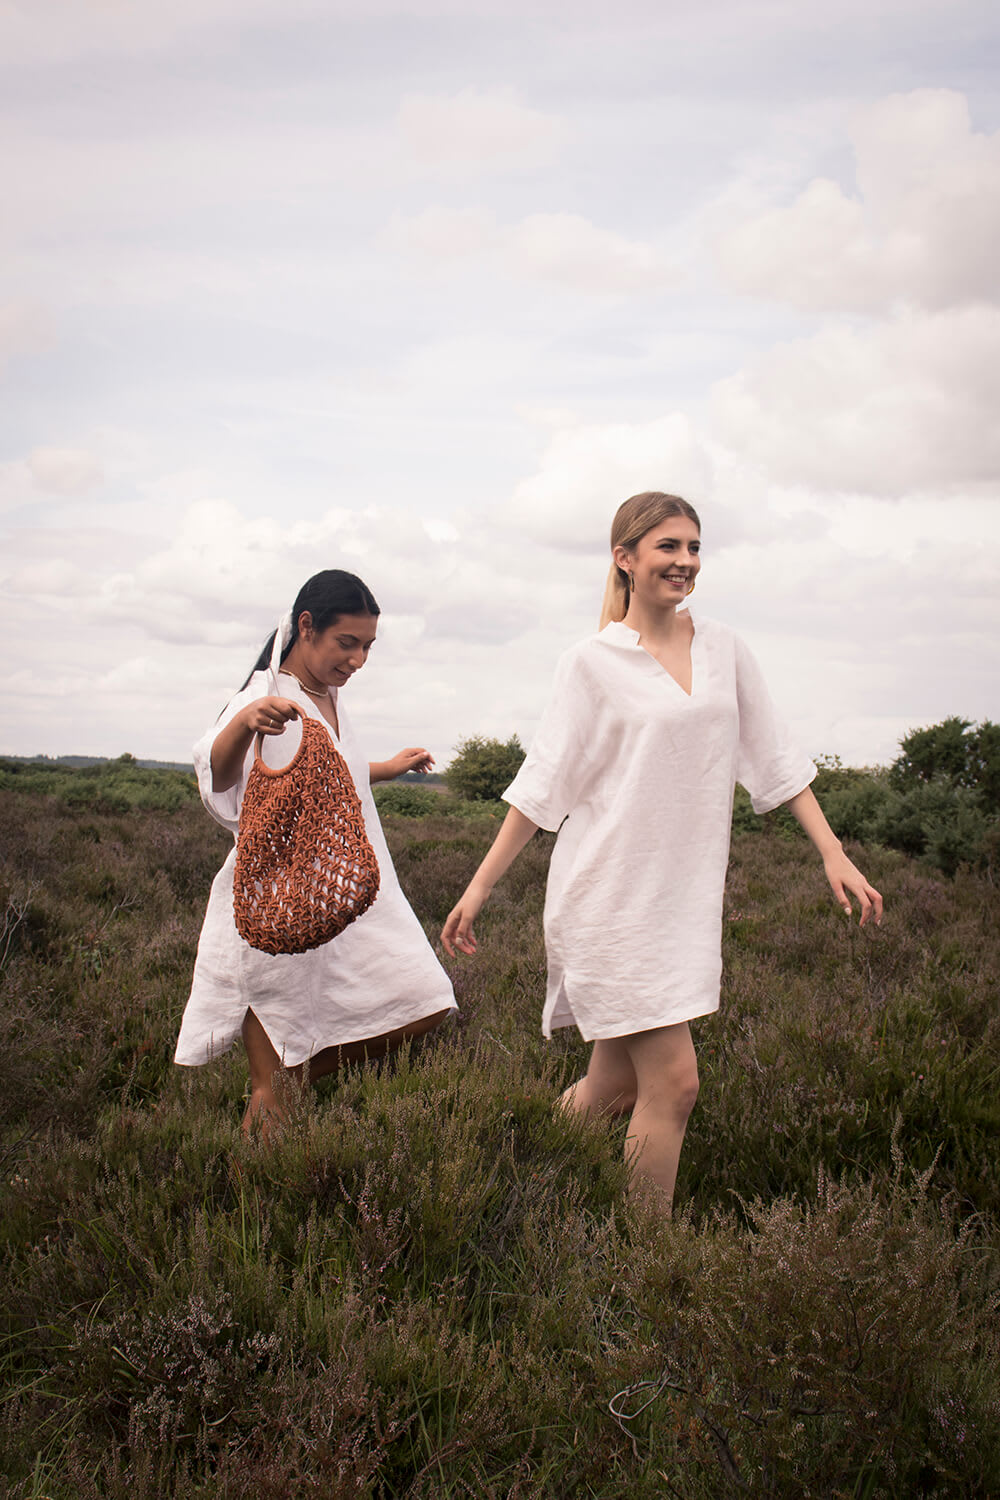 models in white linen tunics New Forest